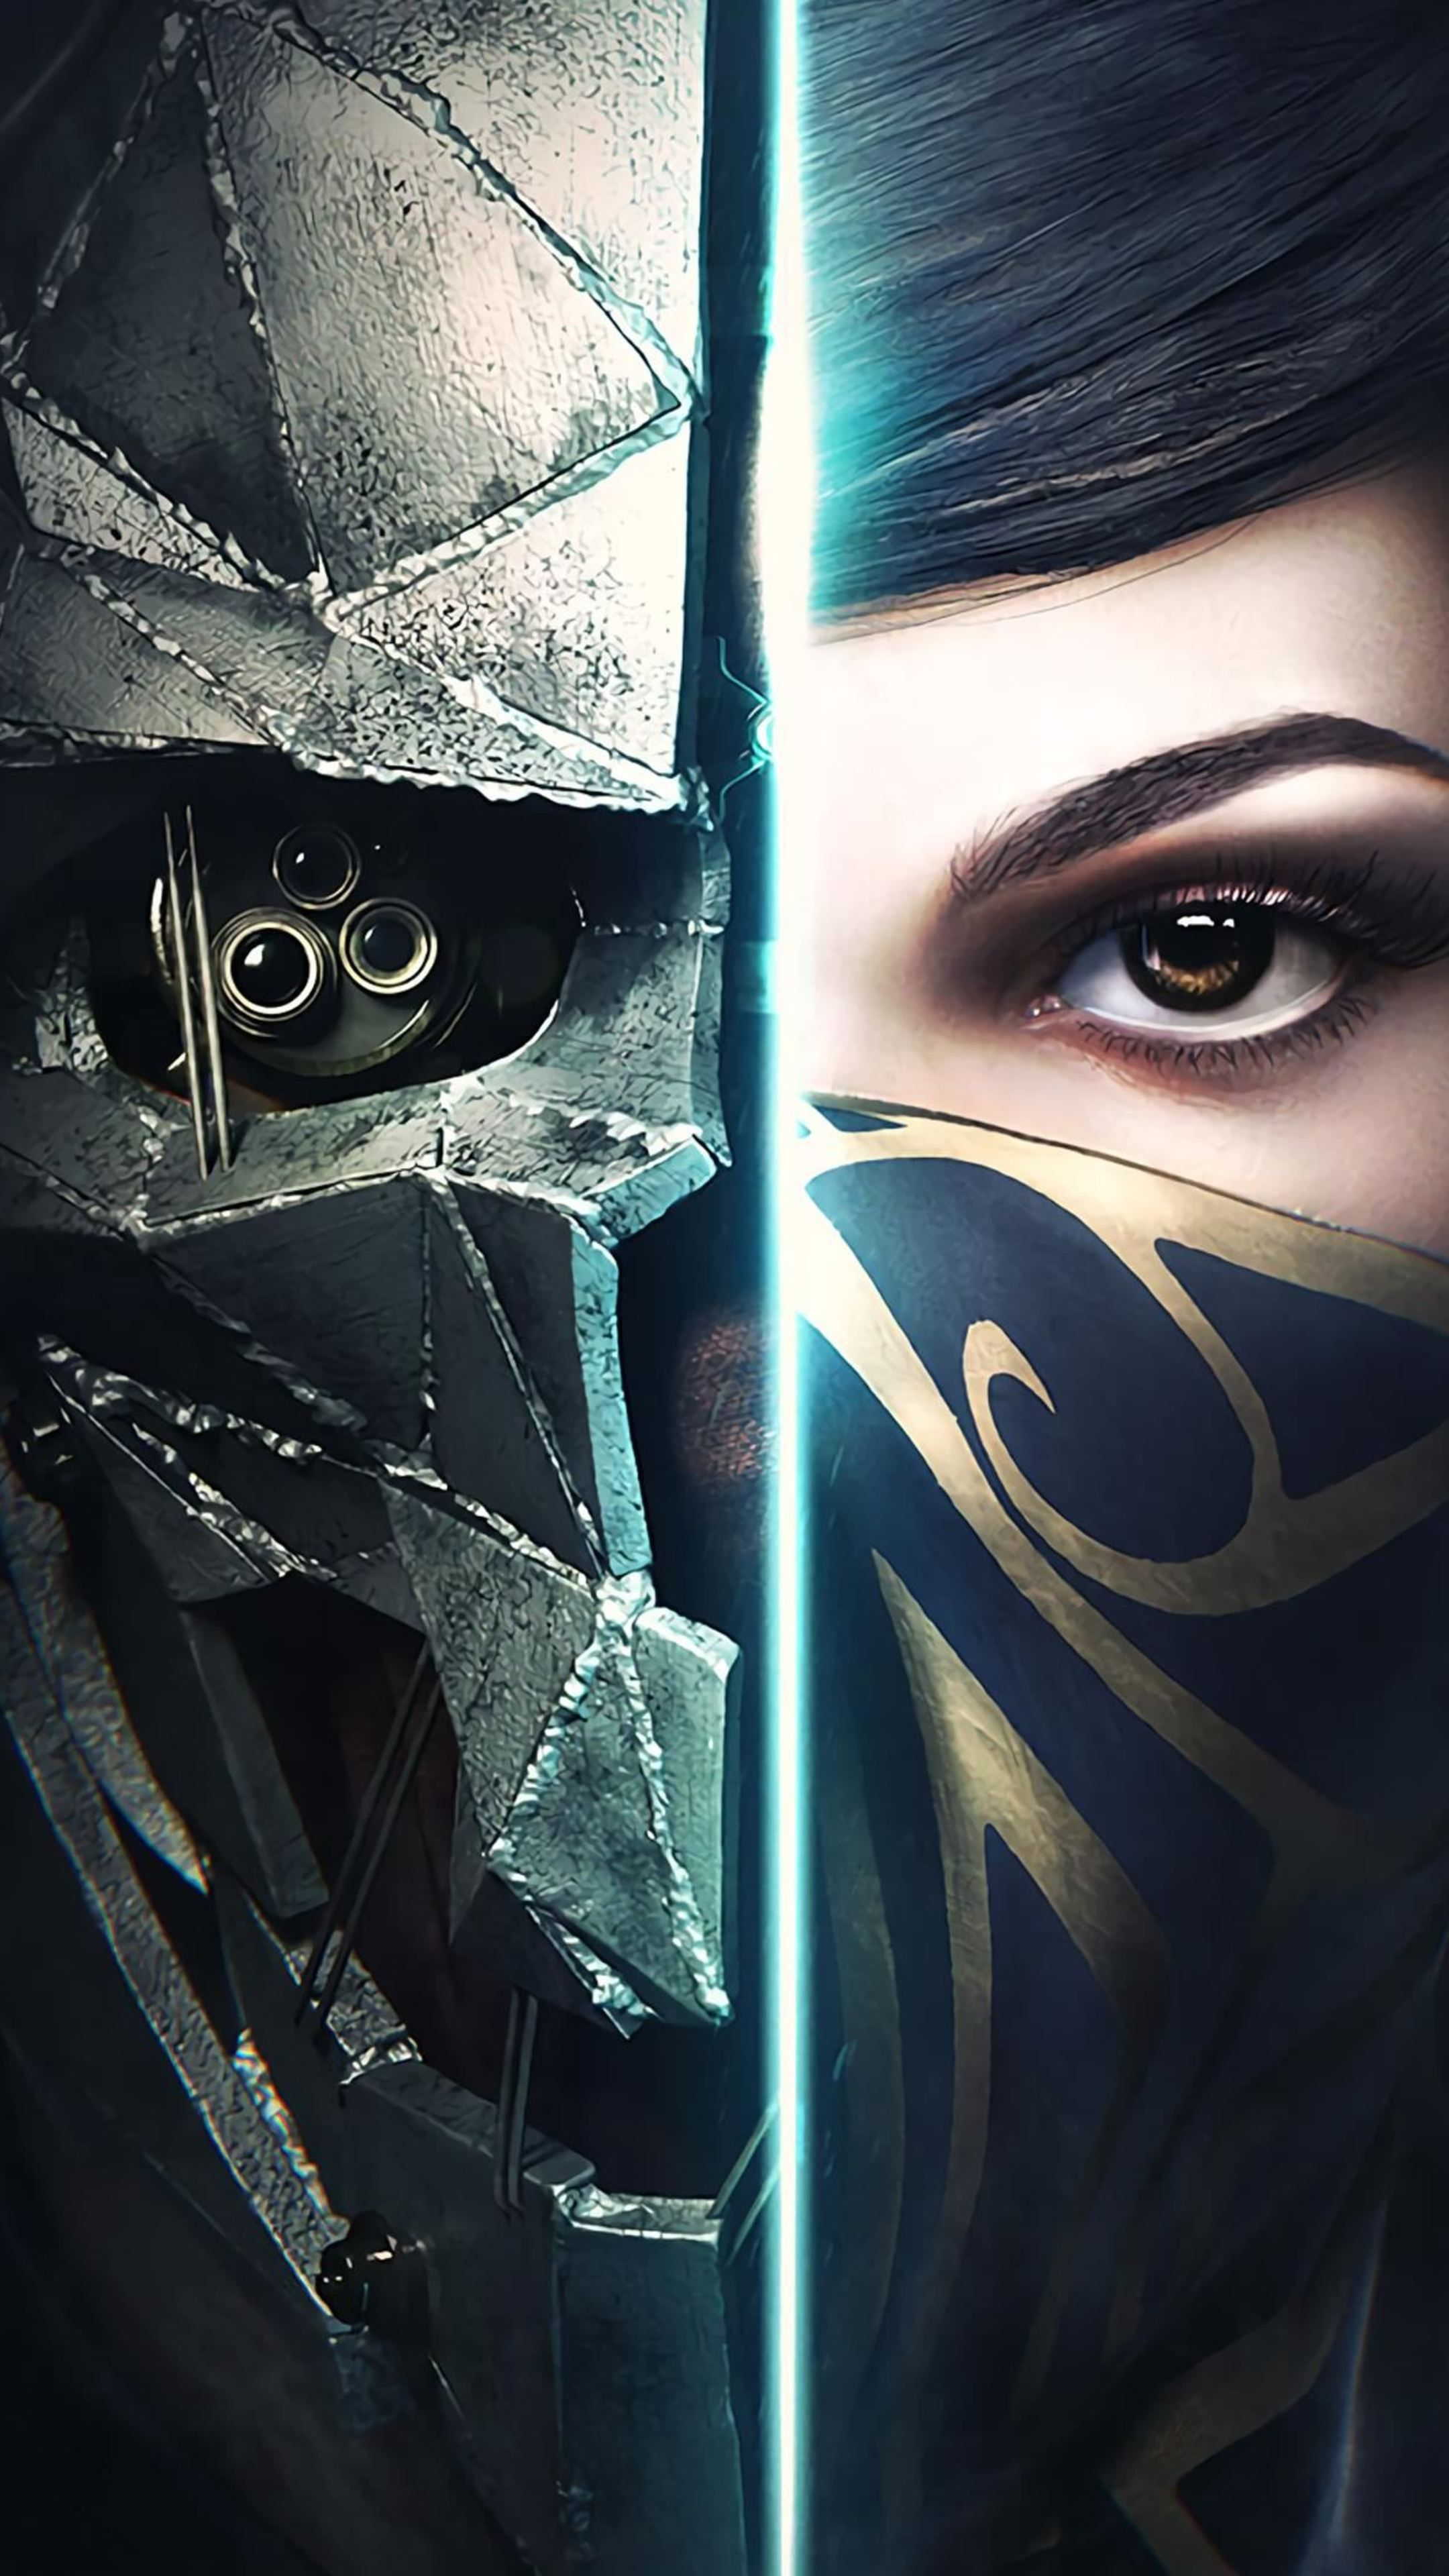 Misc Dishonored 2 4k Game Wallpapers Hd 4k Background For Android Dishonored 4k Background Backgrounds For Android